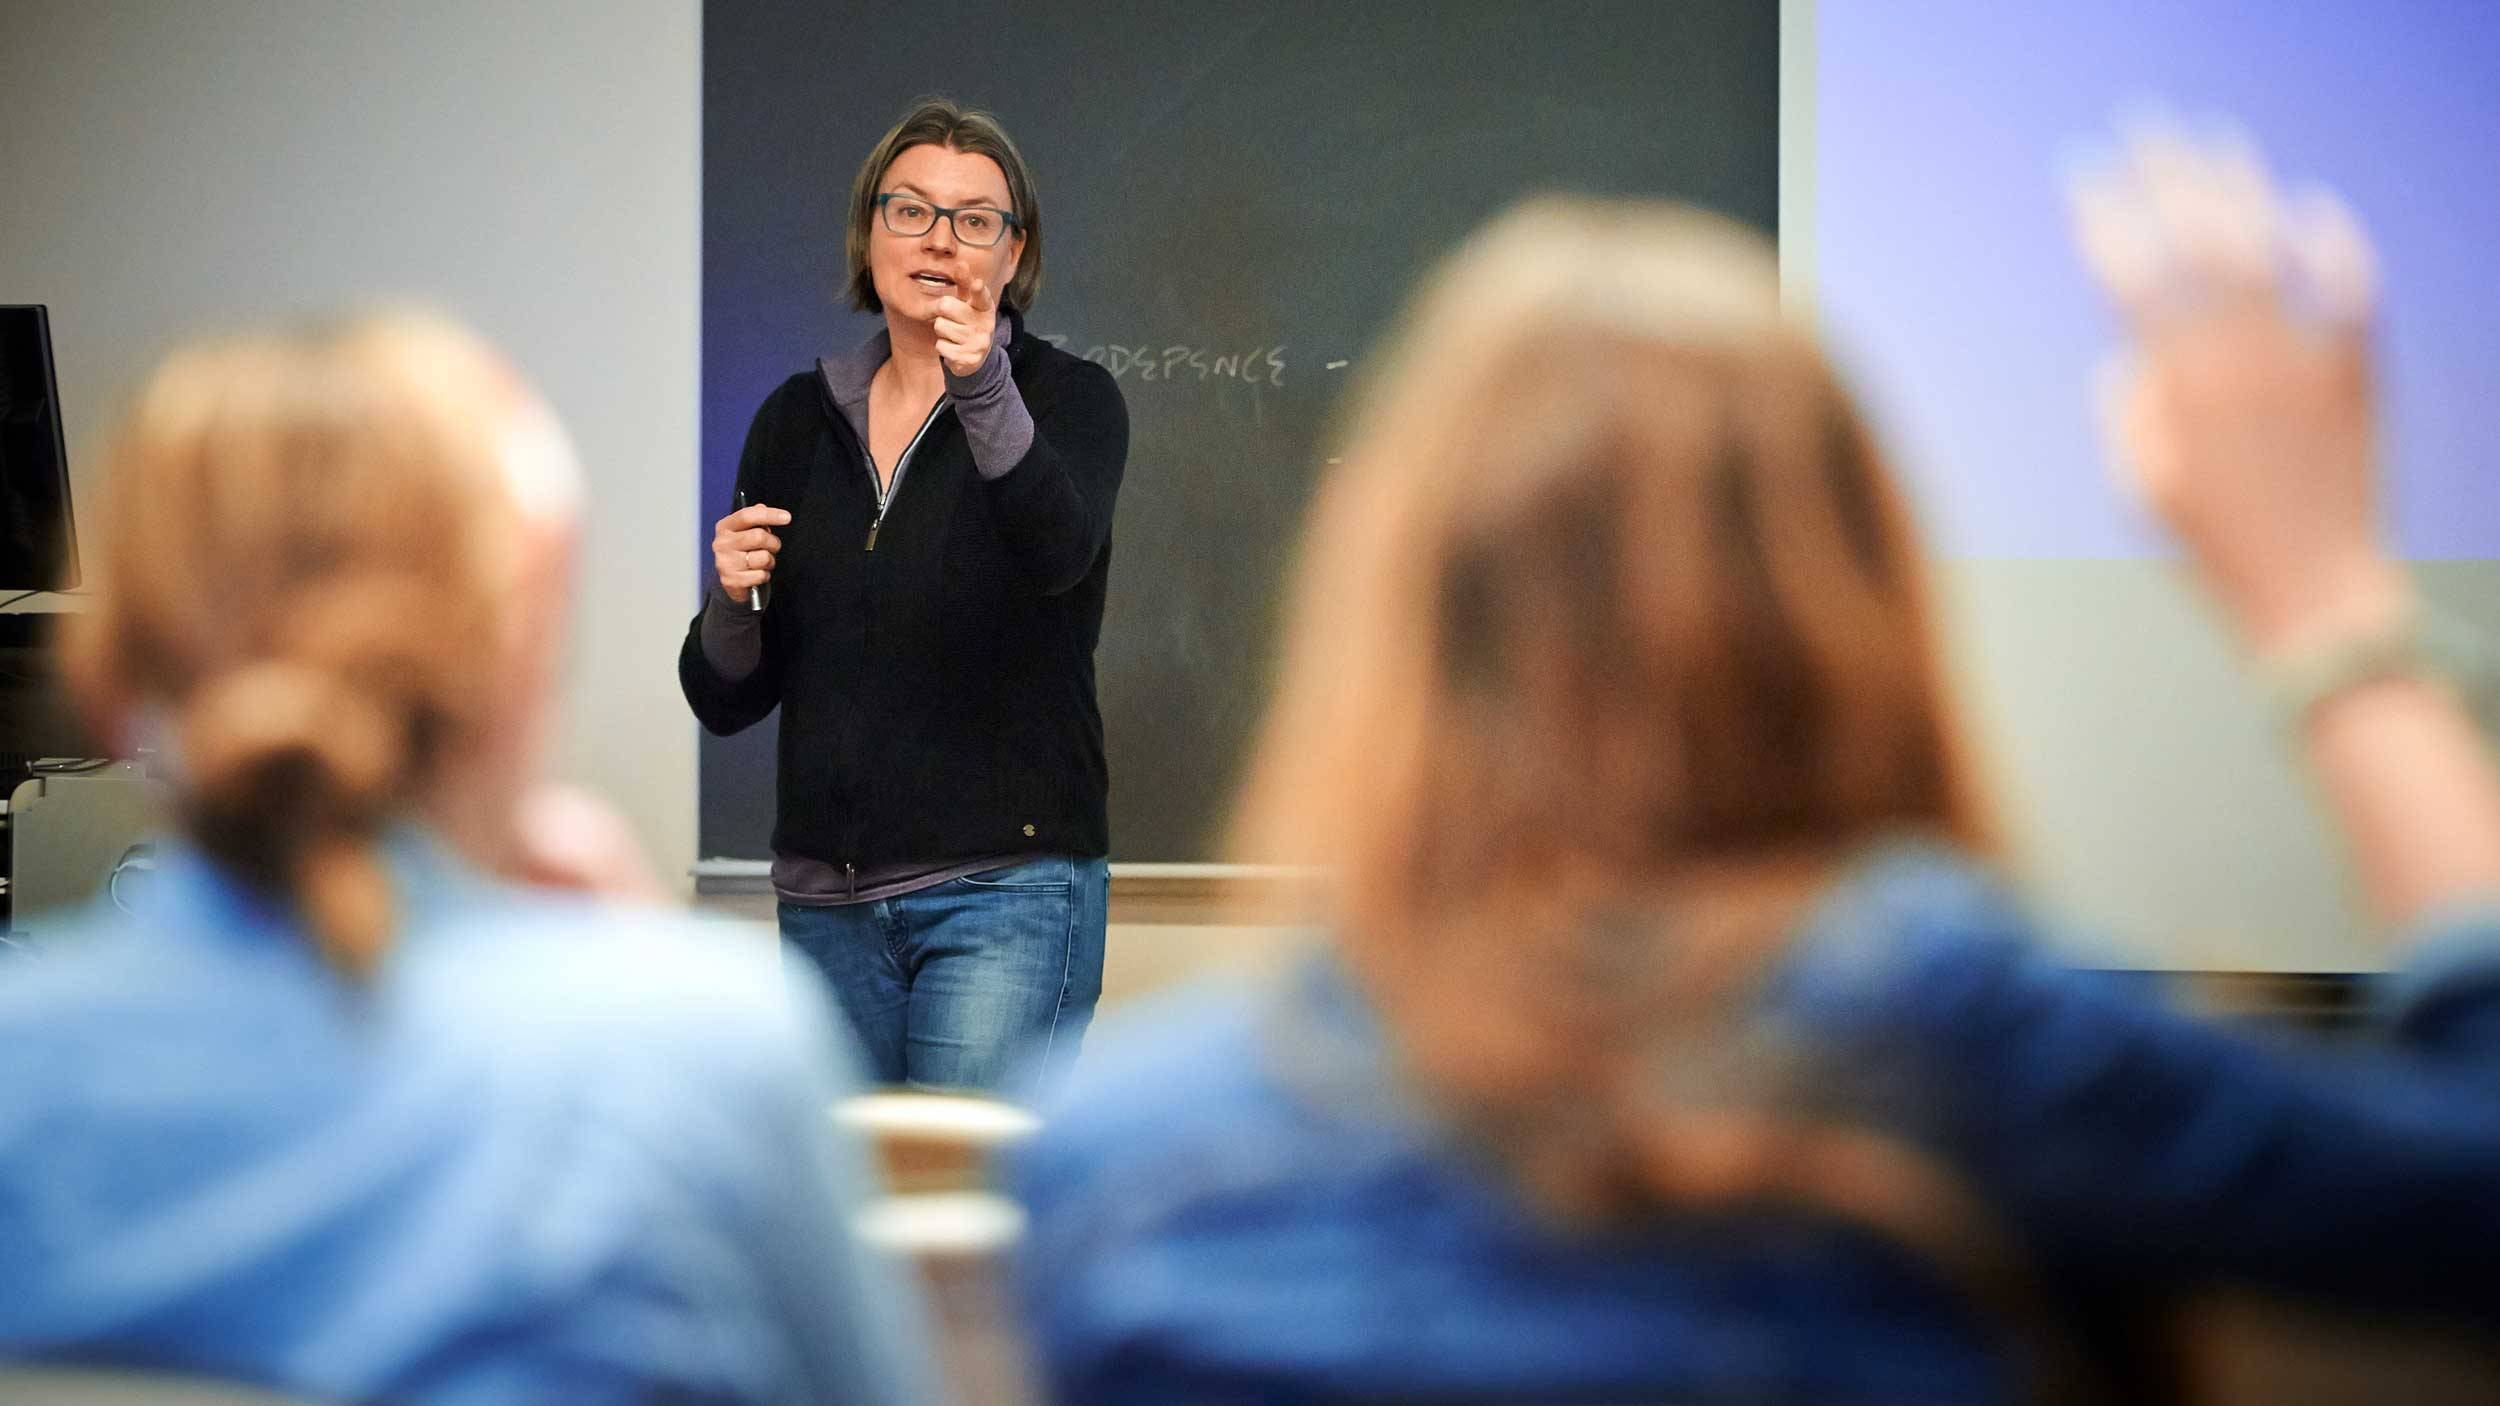 Prof. Susan Thomson speaks to students in a classroom